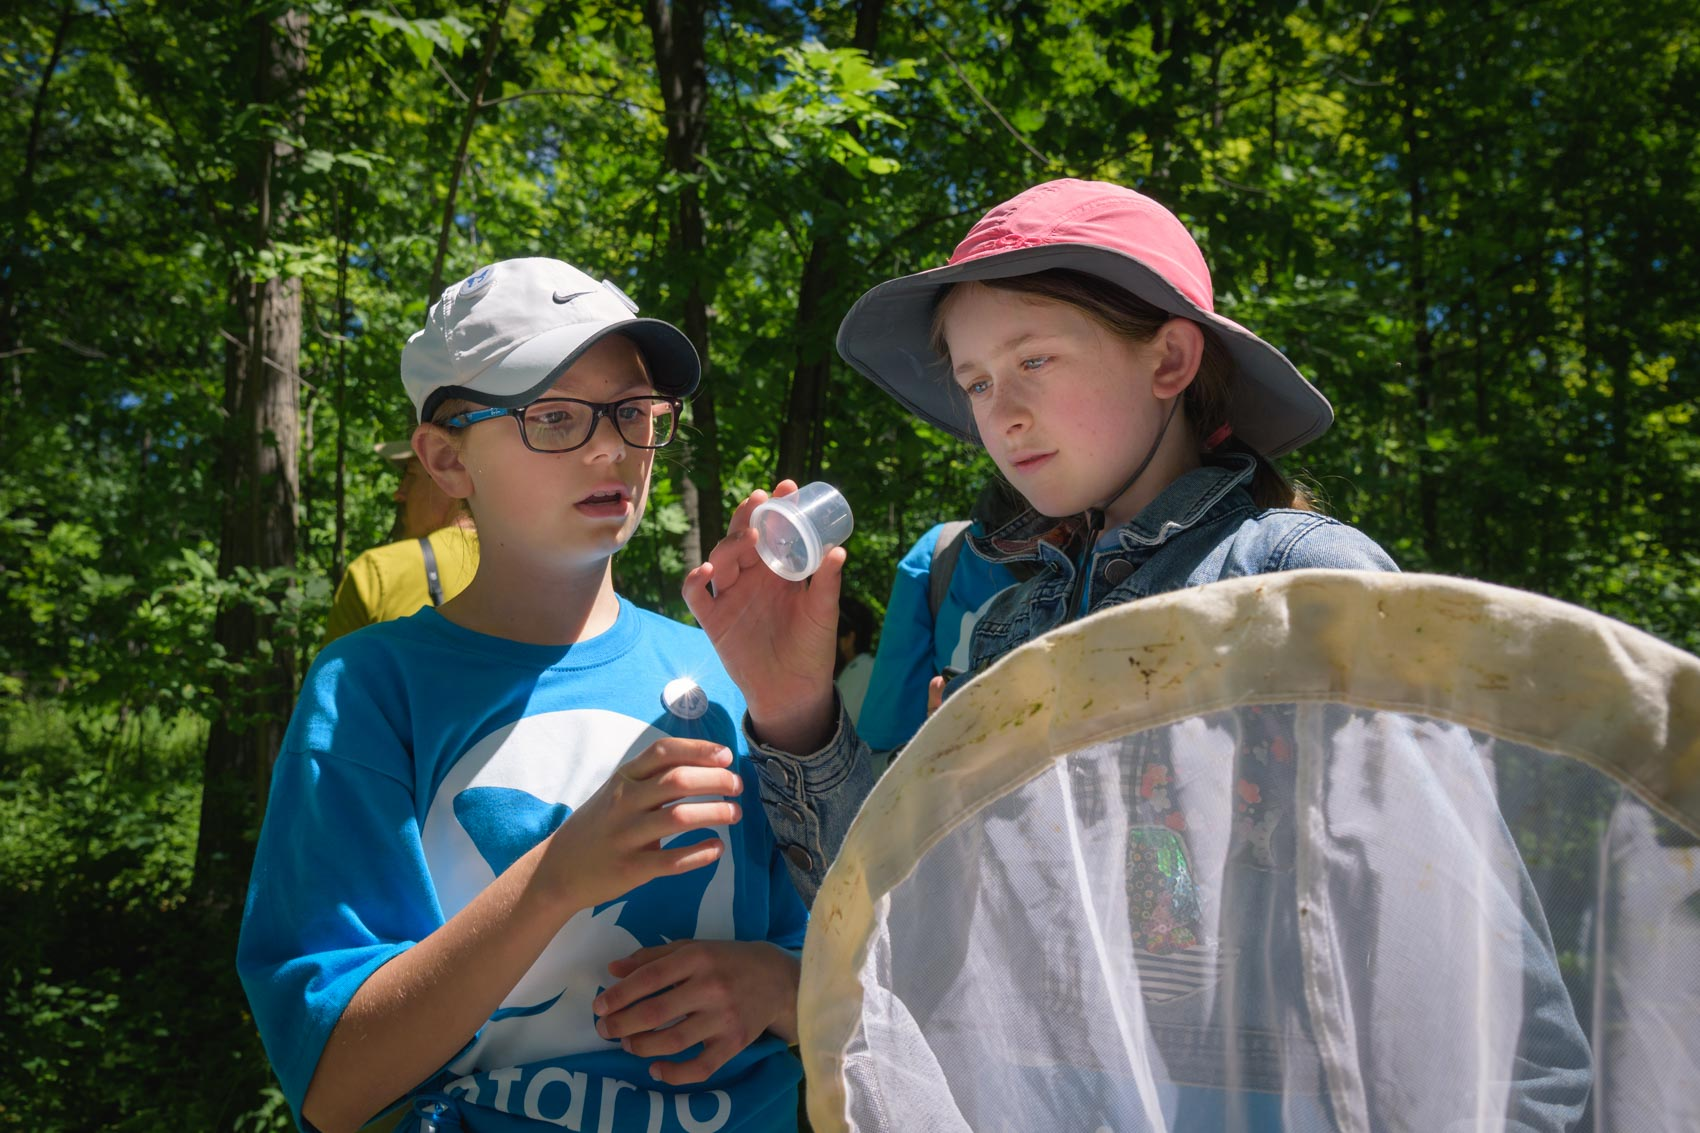 Two girls looking a bee in a container at a BioBlitz